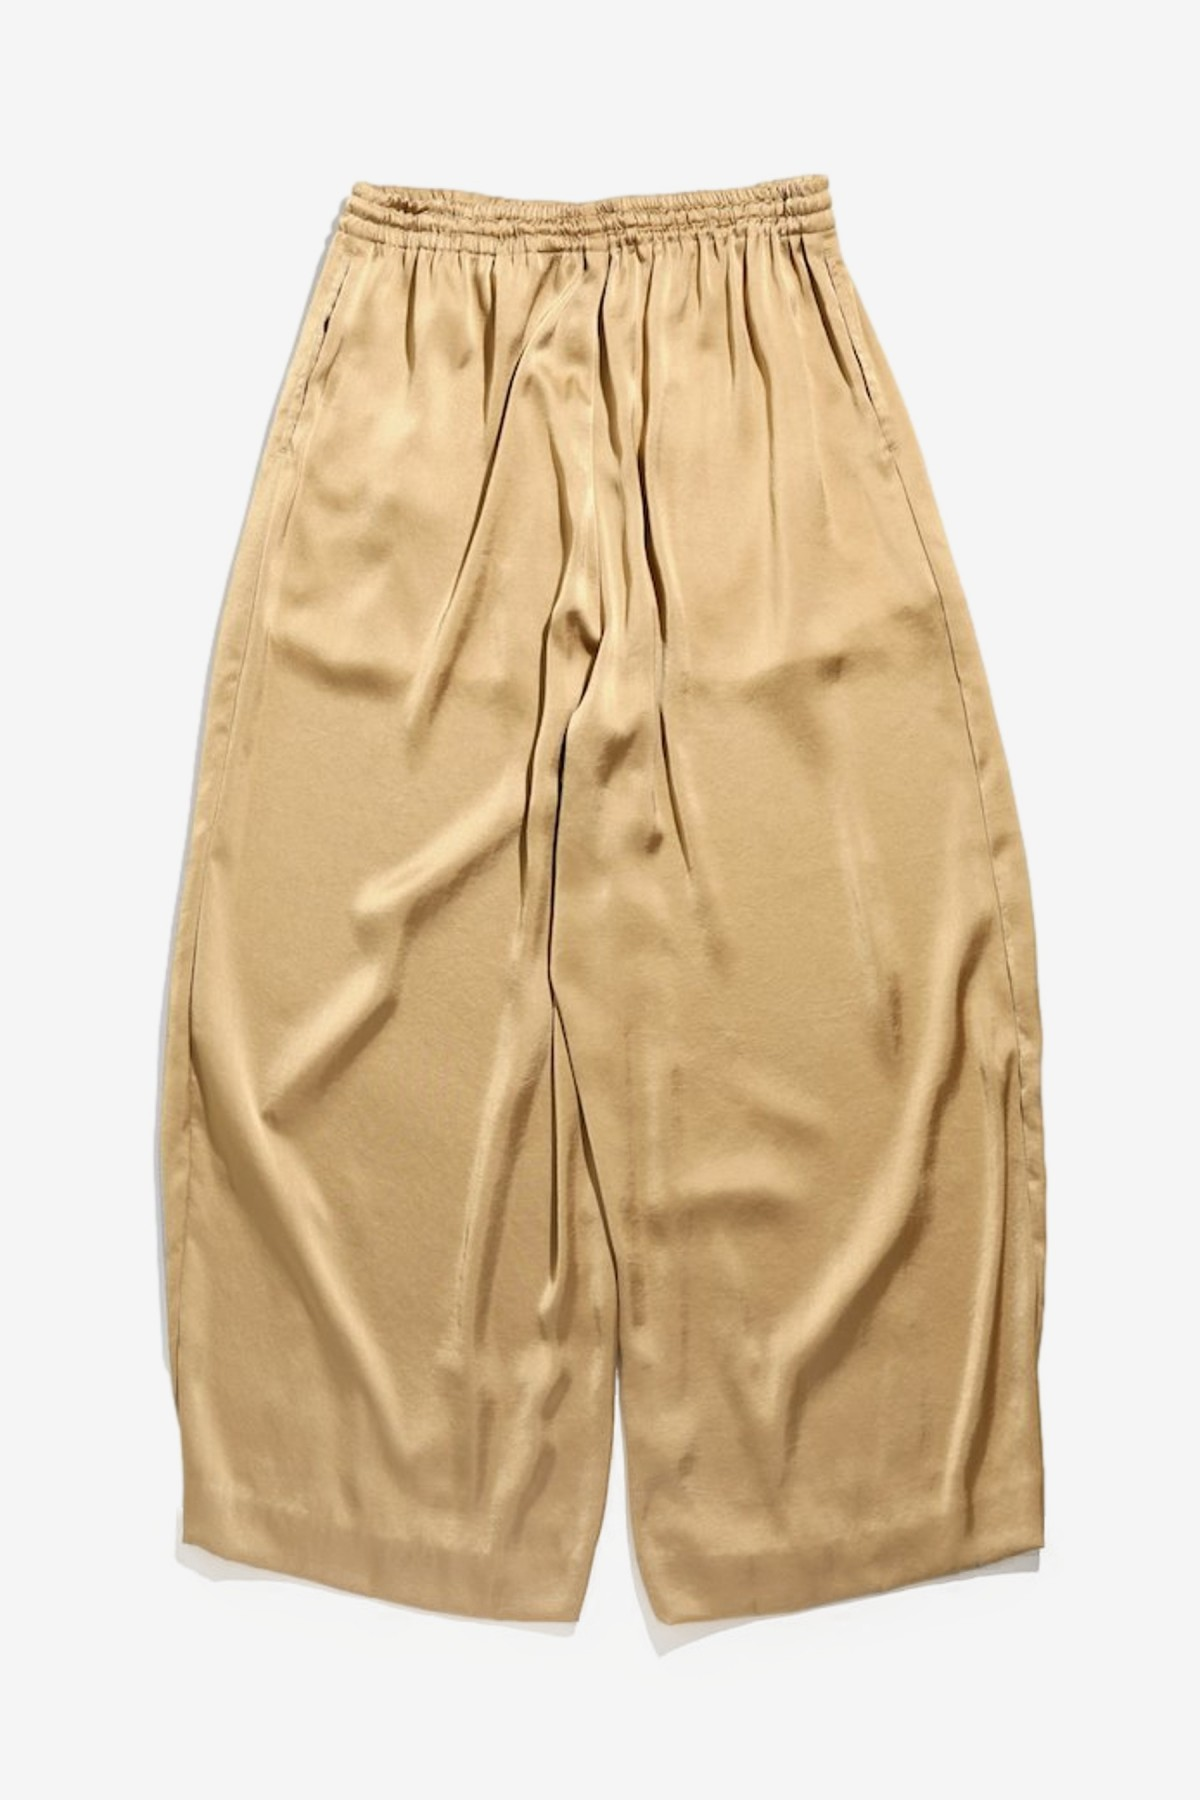 Needles H.D.P. Pant in Khaki